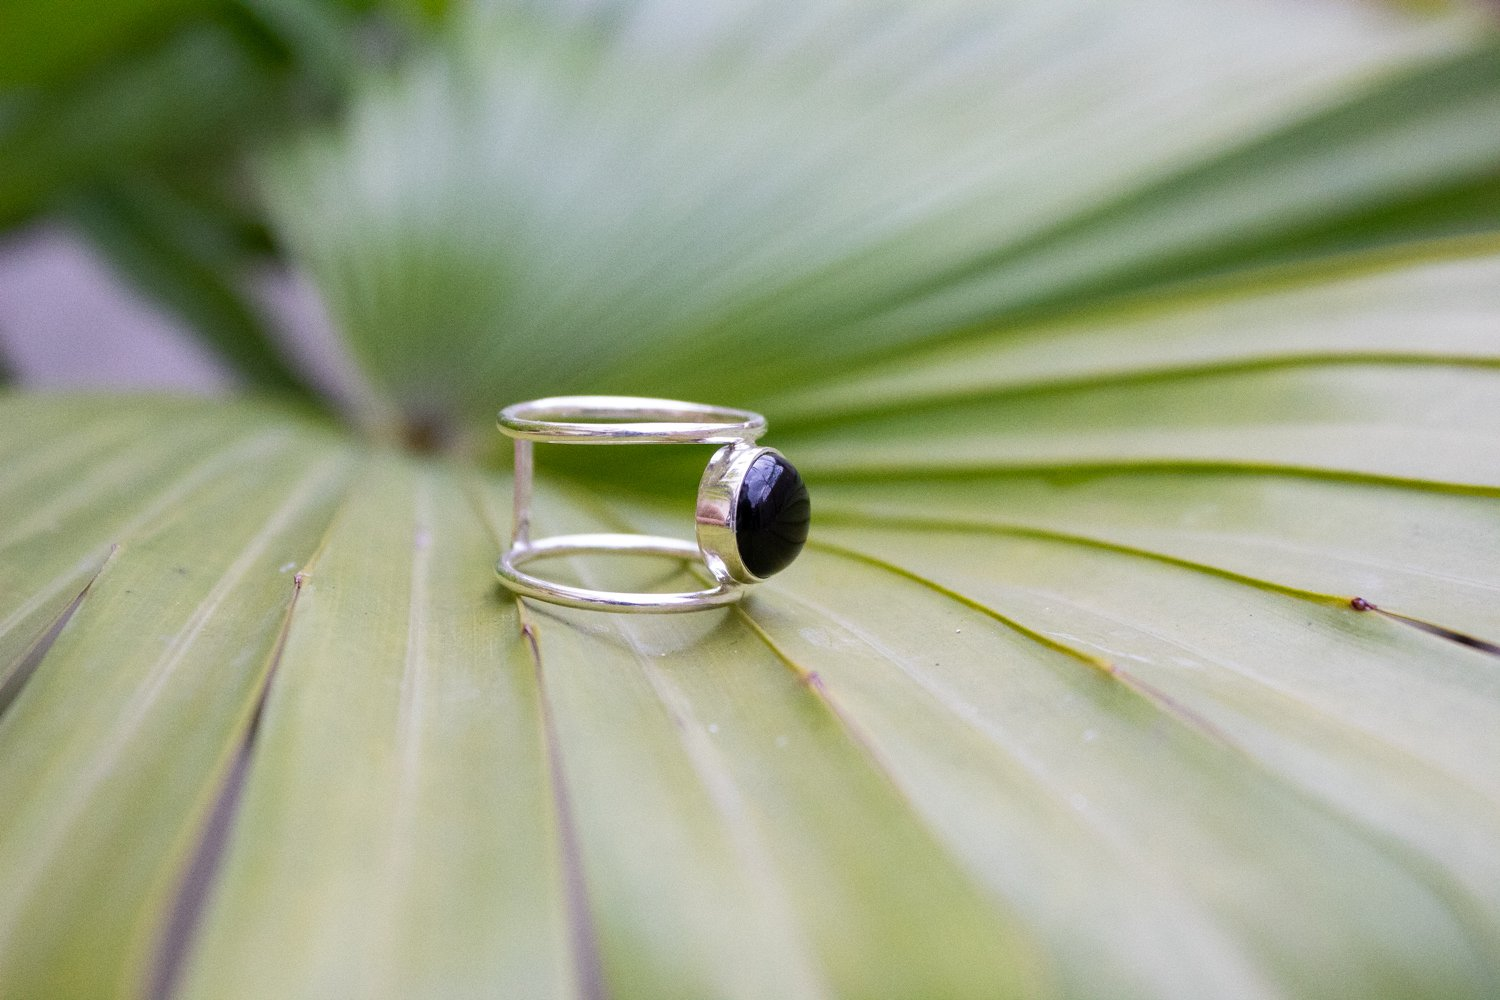 Dual Thin Band Black Onyx Ring 925 Sterling Silver AR-1161 - Its Ambra